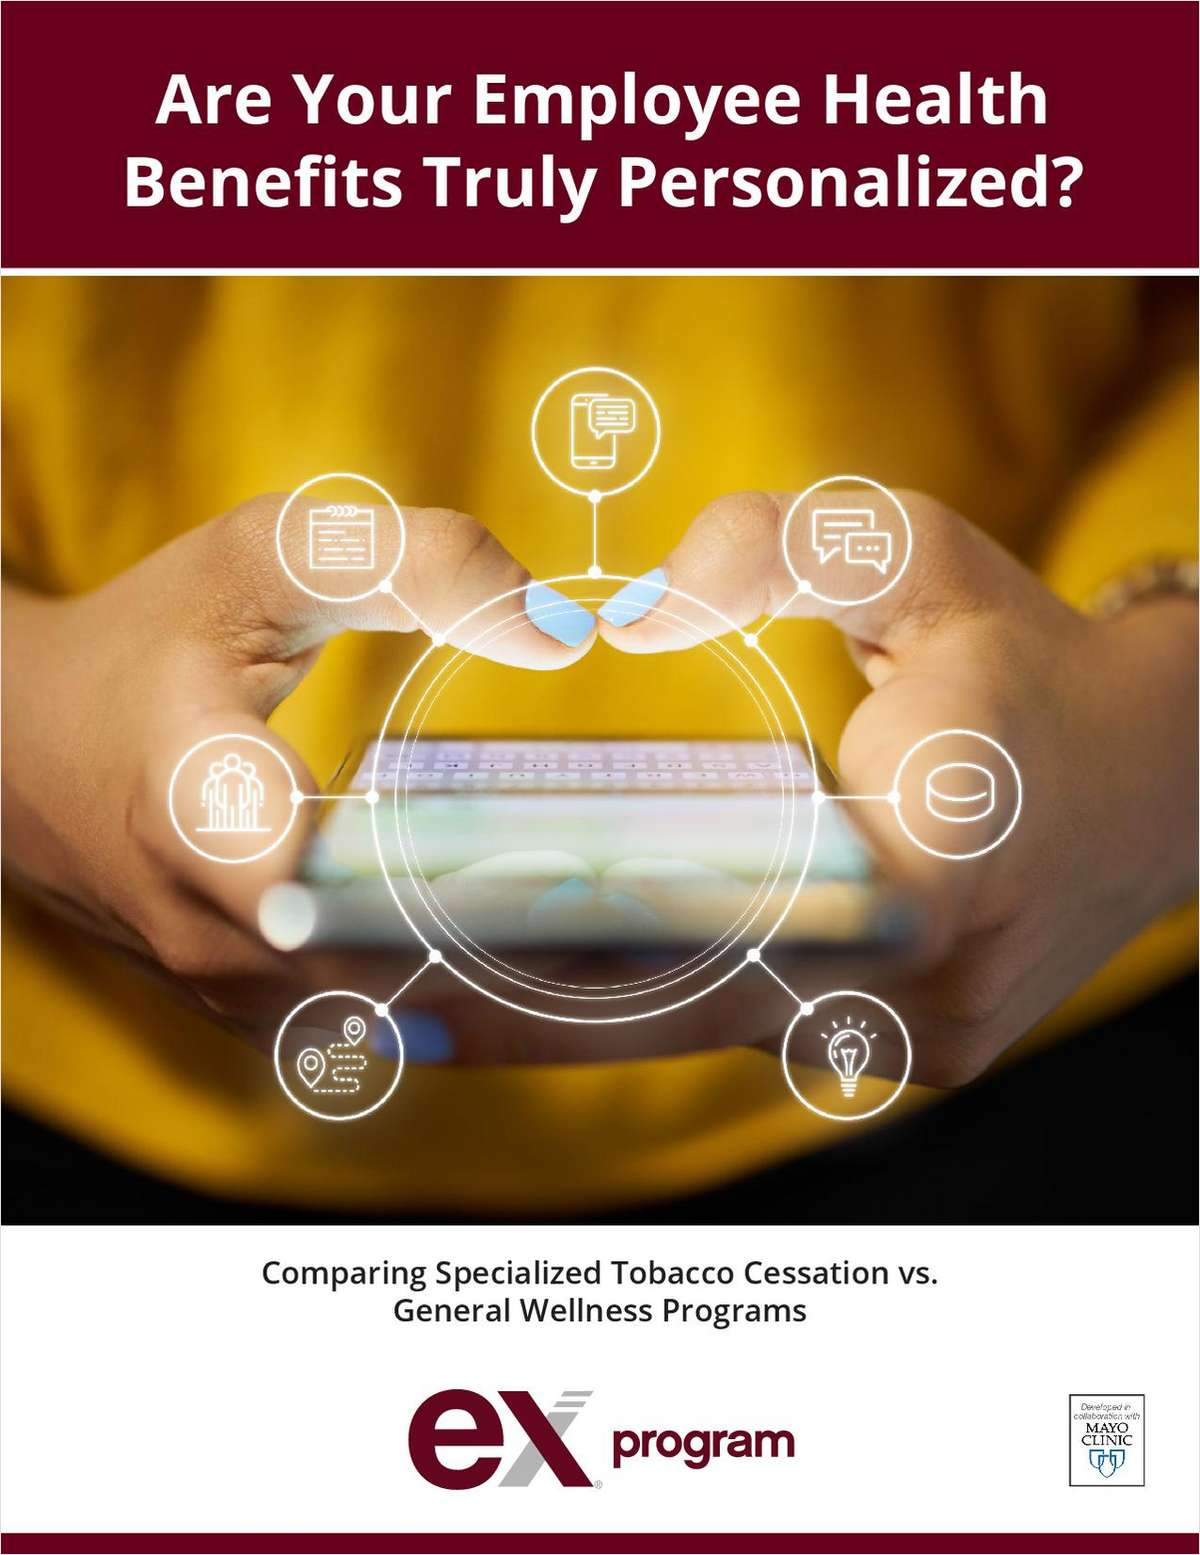 Personalize Employee Benefits Where it Matters Most